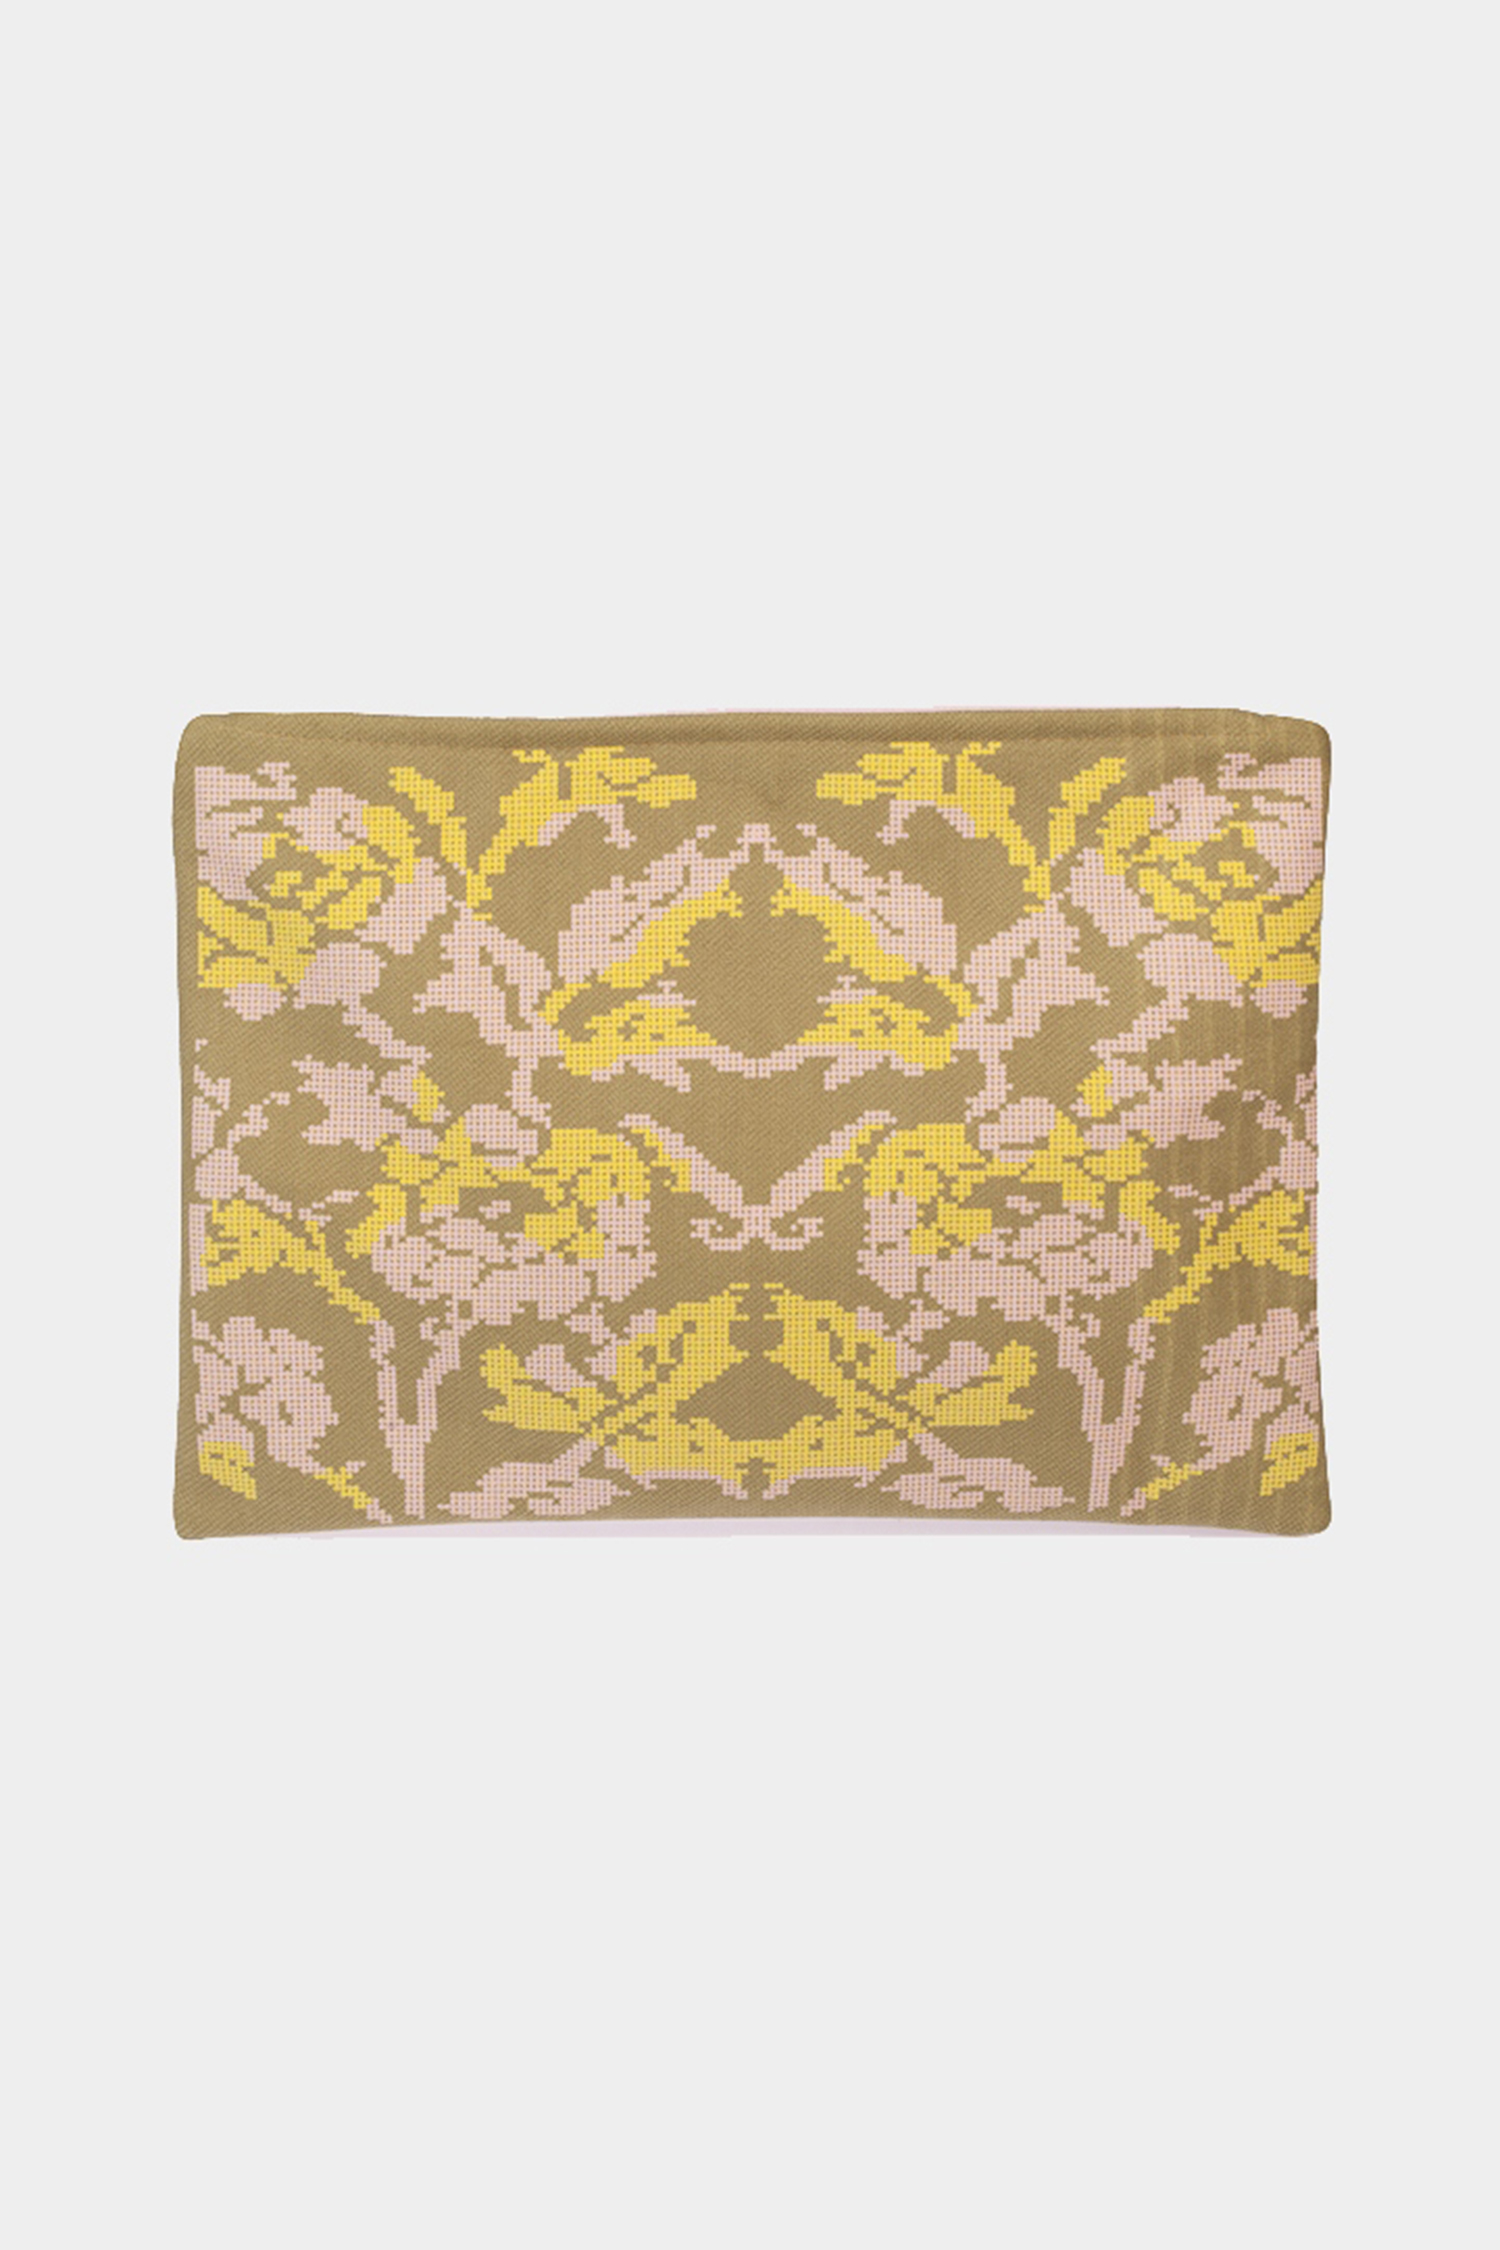 POSTFOLK 'Come into Bloom' Clutch Bag